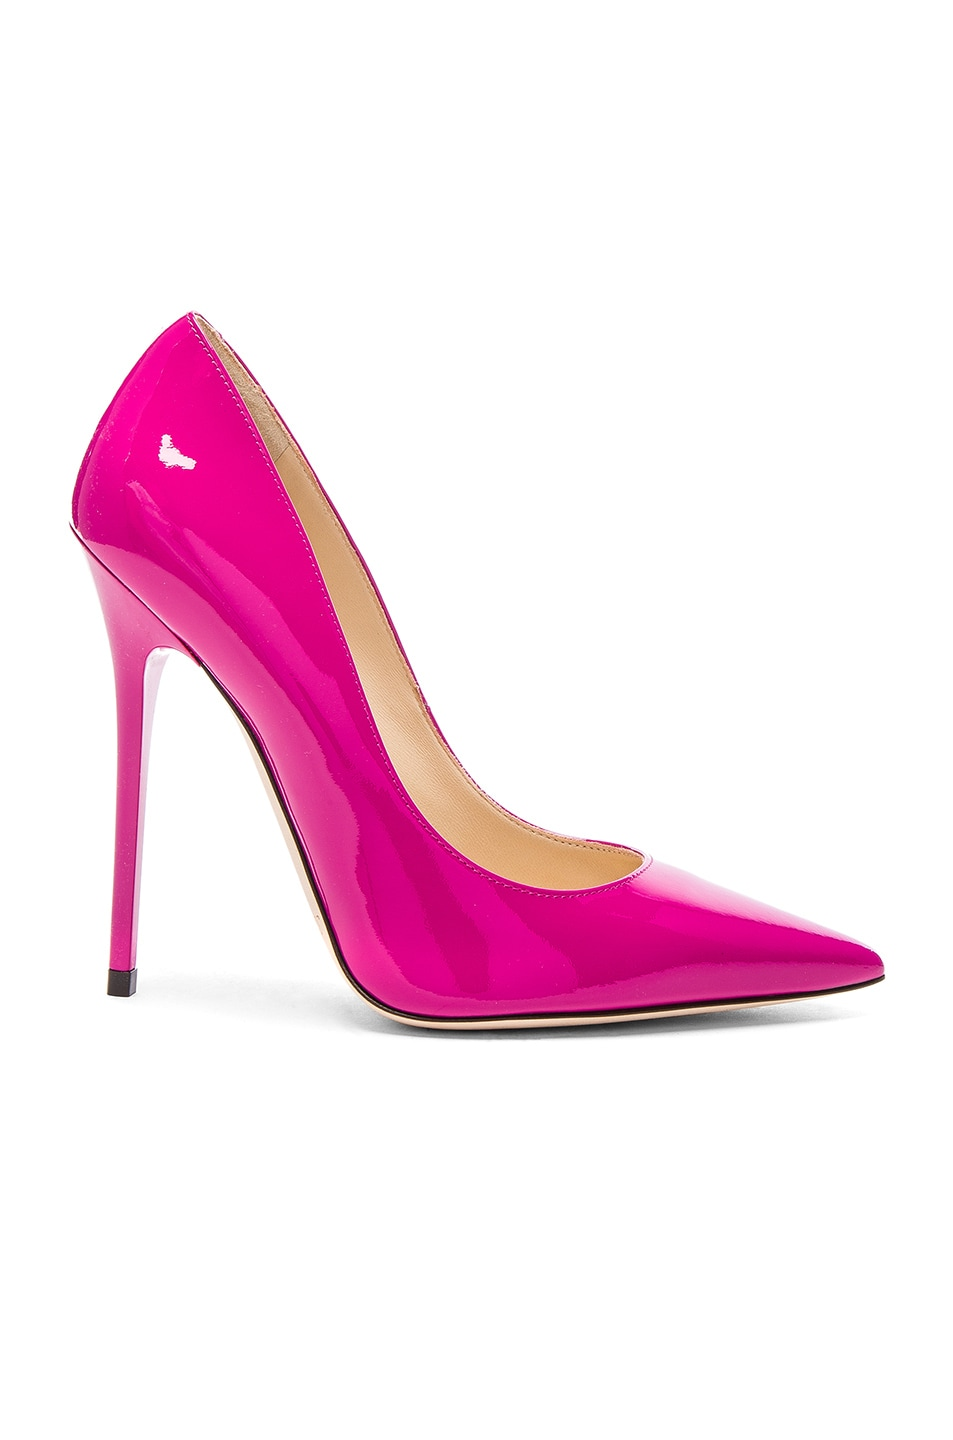 Image 1 of Jimmy Choo Patent Leather Anouk Heels in Jazzberry